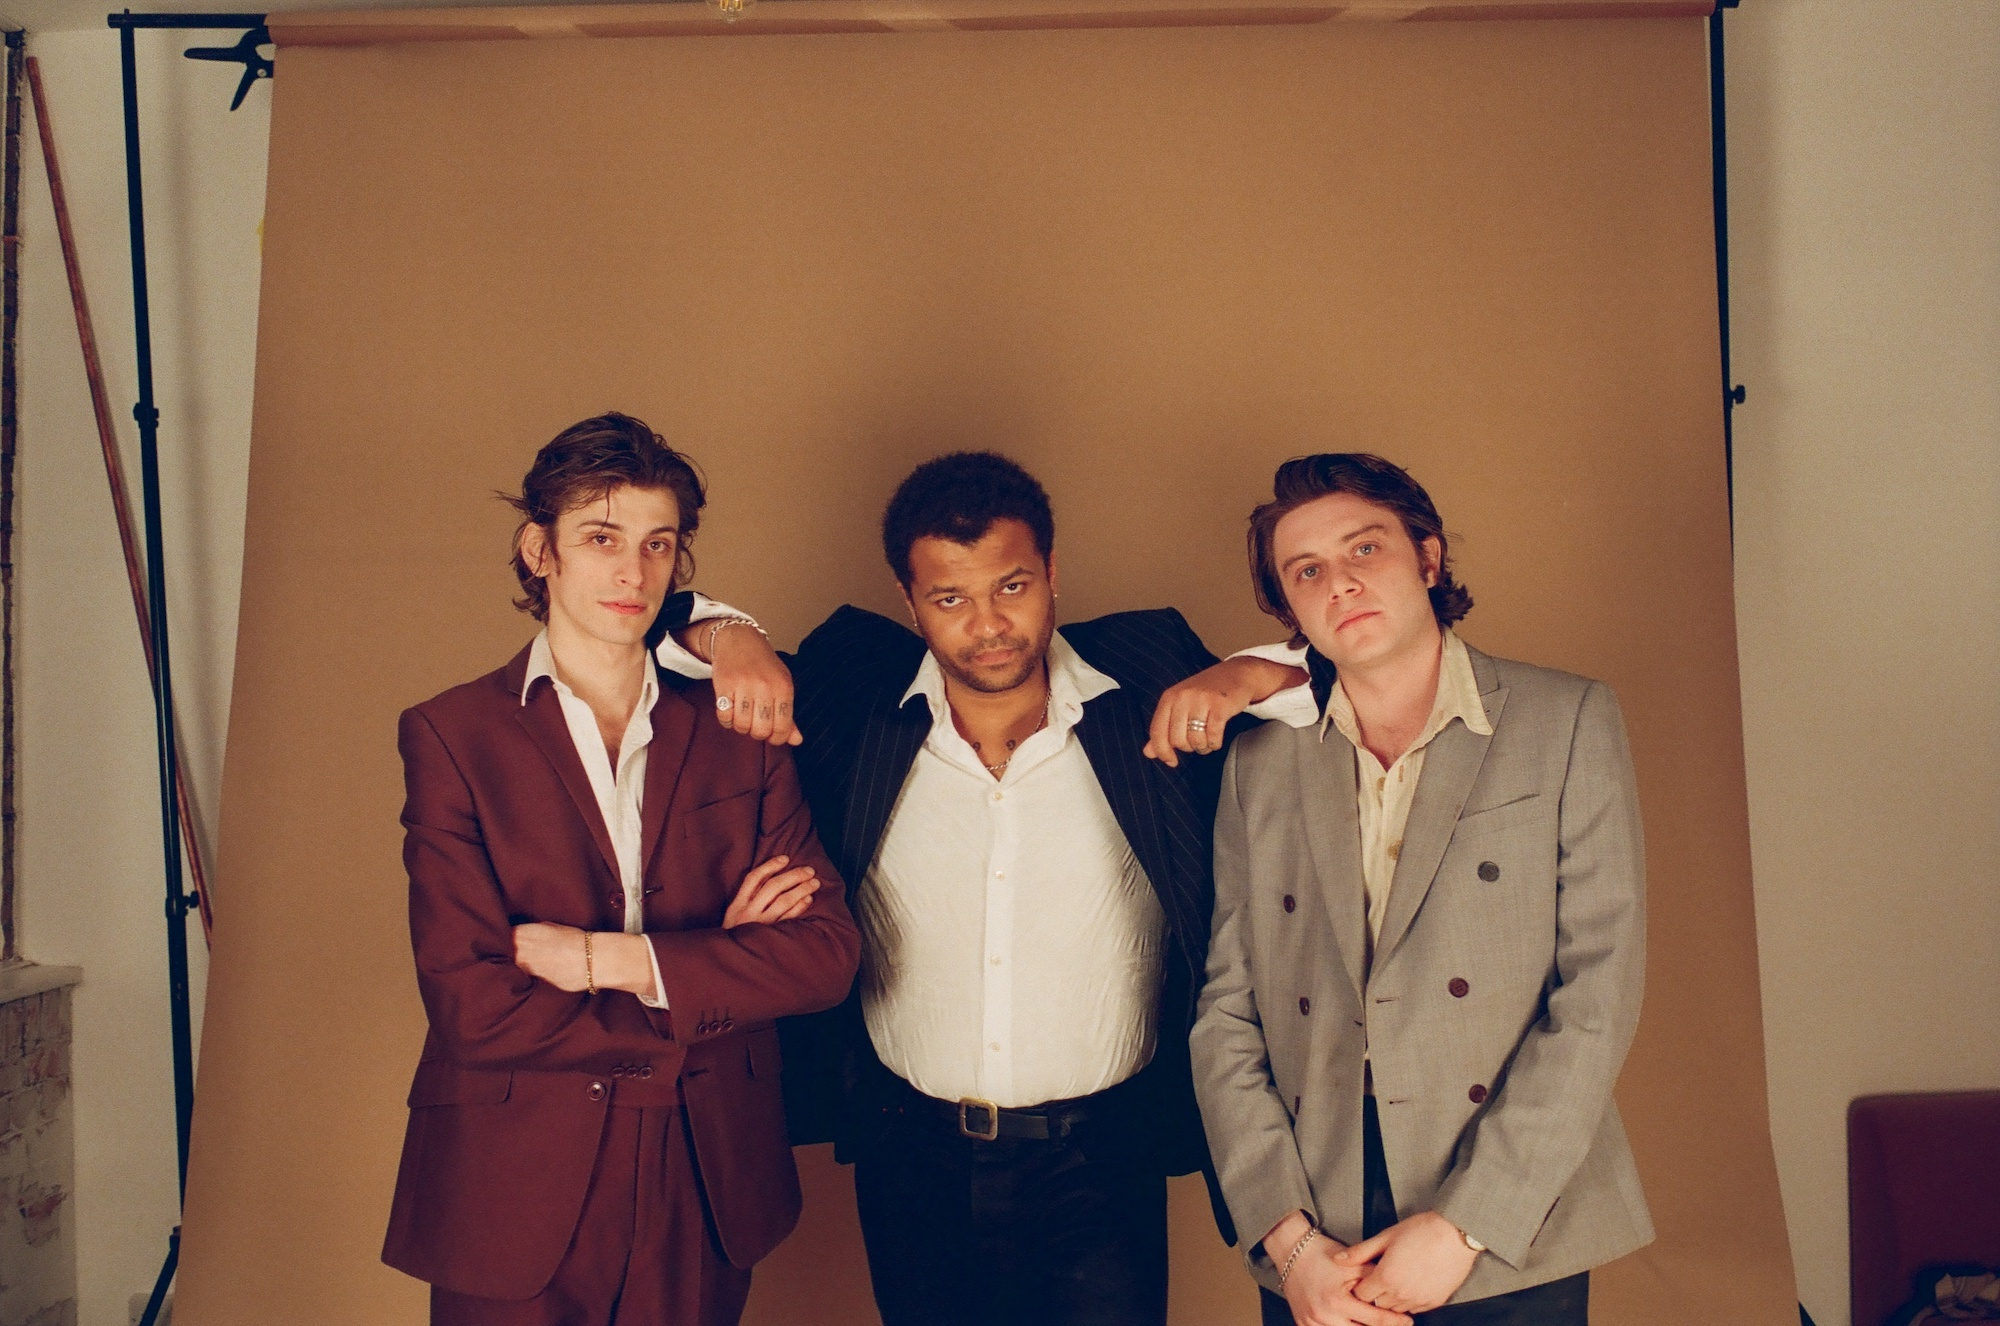 Sunglasses For Jaws offer up new track 'What Does It Look ...